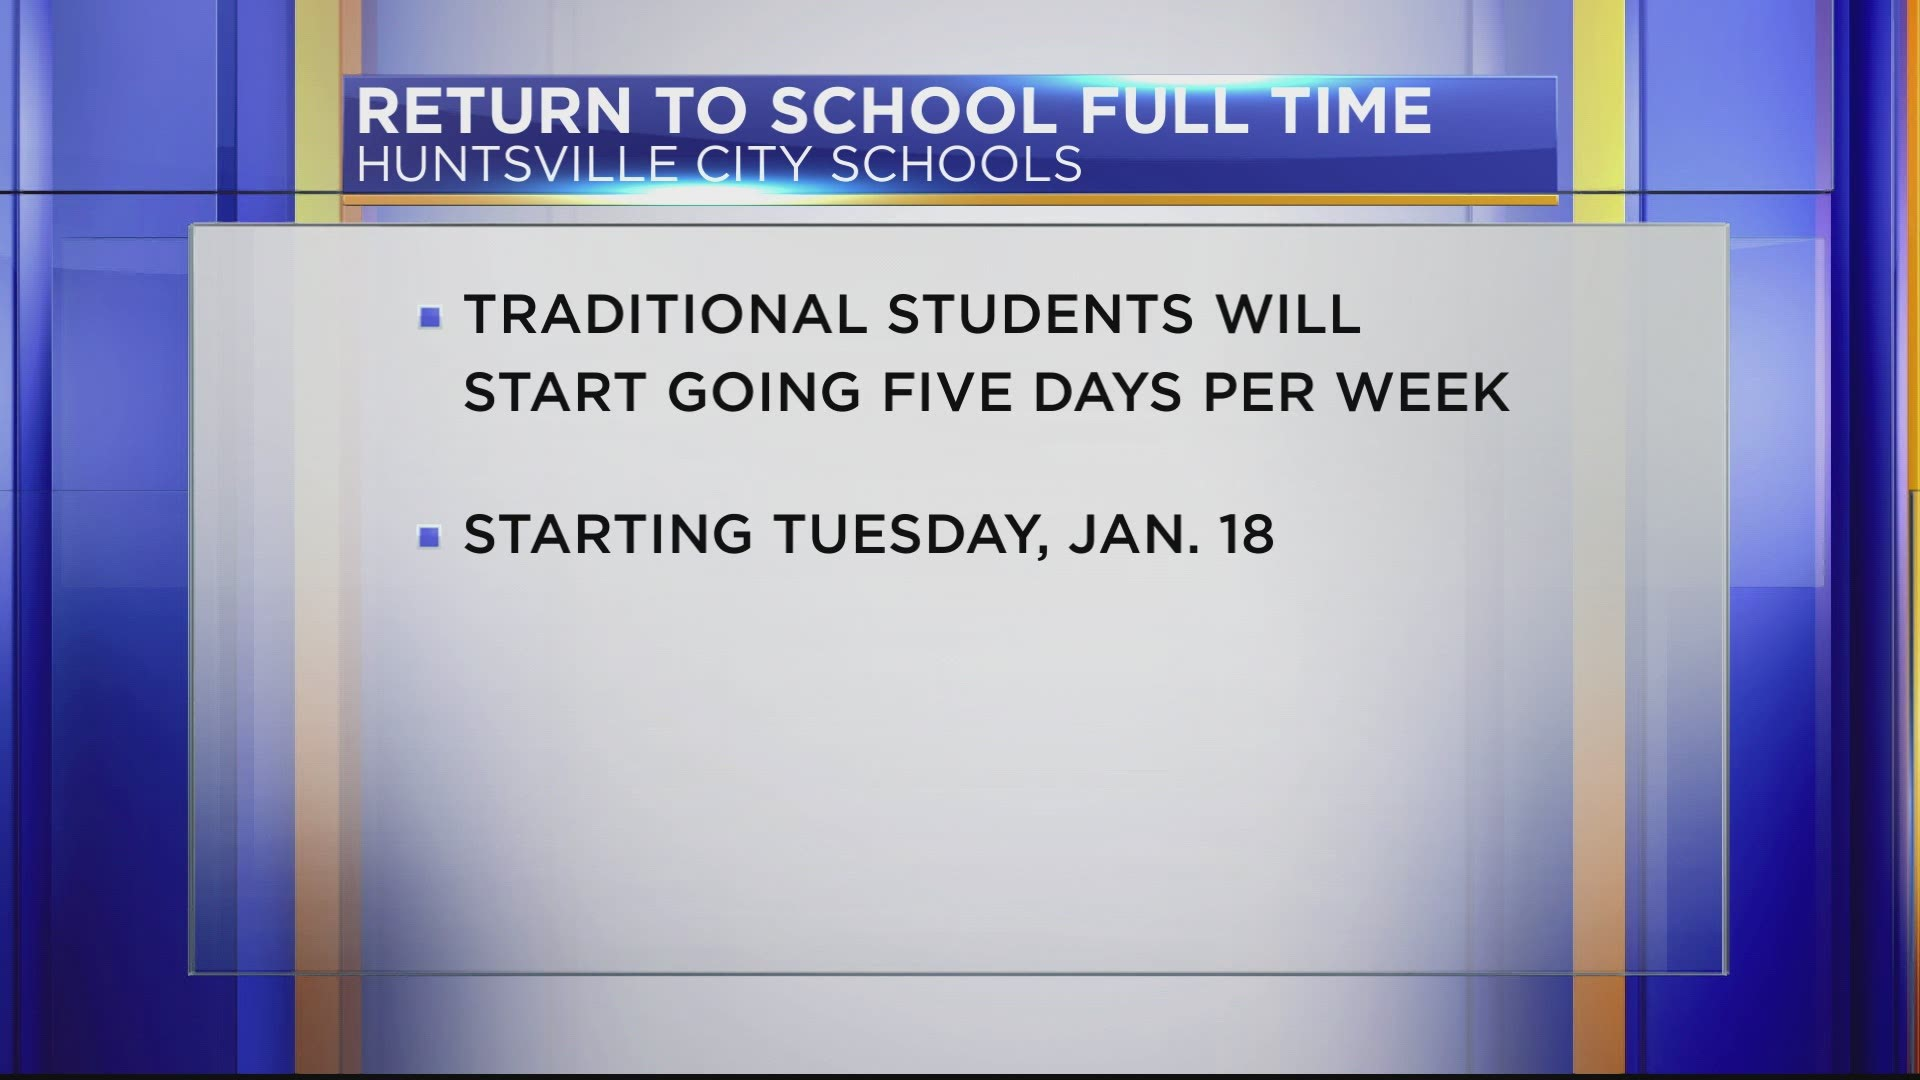 Huntsville City School Calendar 2021-22 Huntsville City Schools returns to full in person schedule | 10tv.com